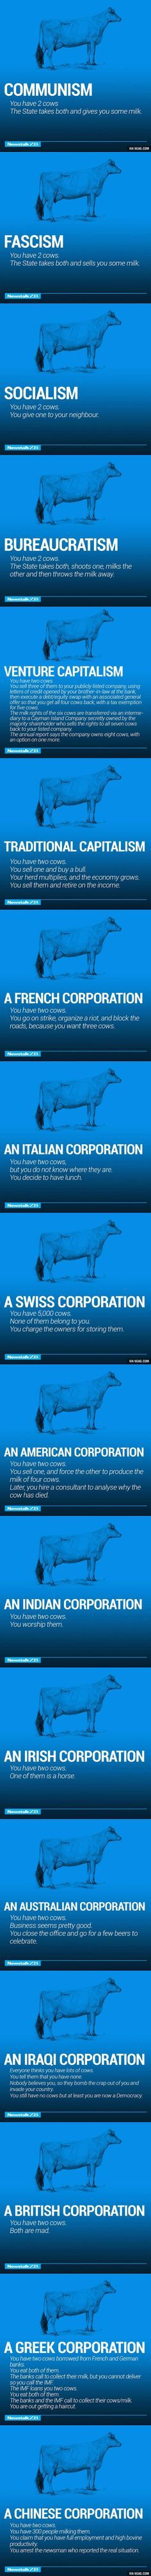 The world economy explained with just two cows.